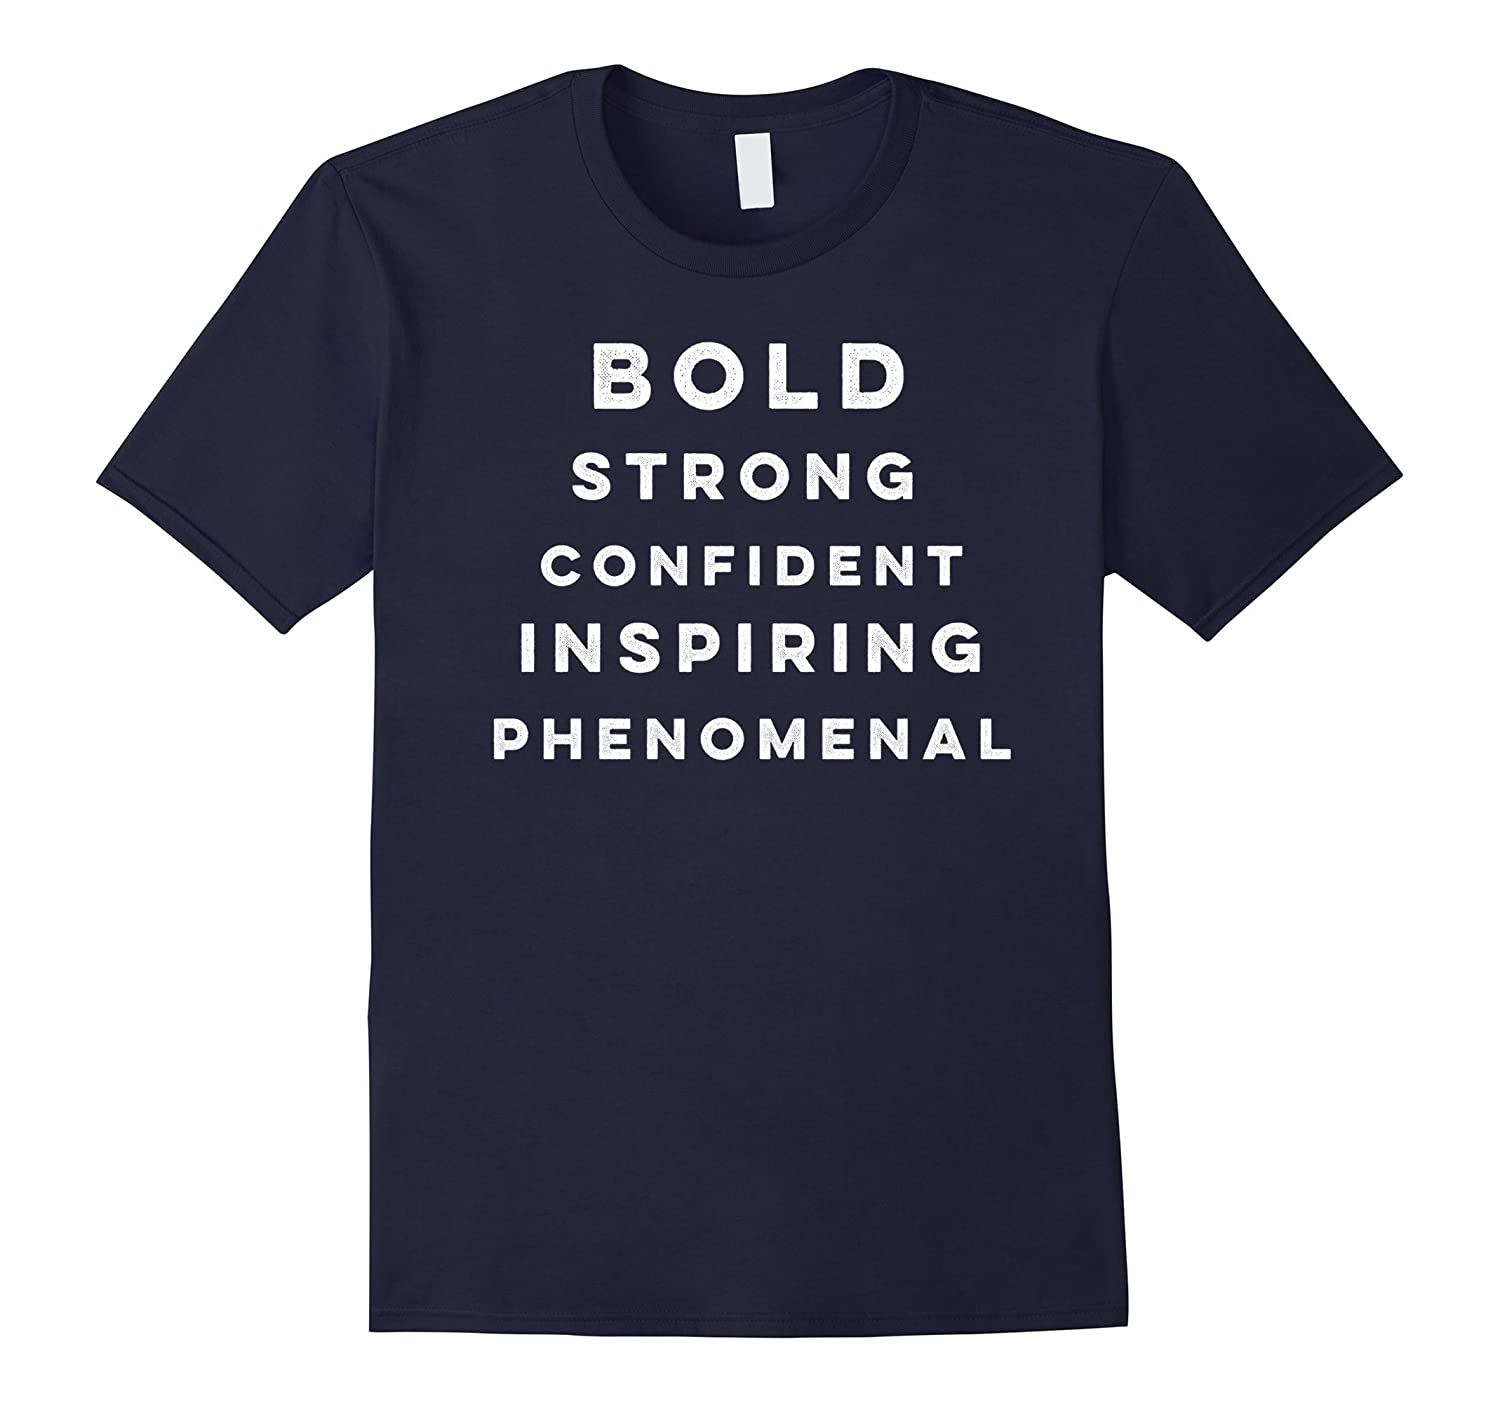 BOLD STRONG CONFIDENT PHENOMENAL WOMAN T-SHIRT-BN